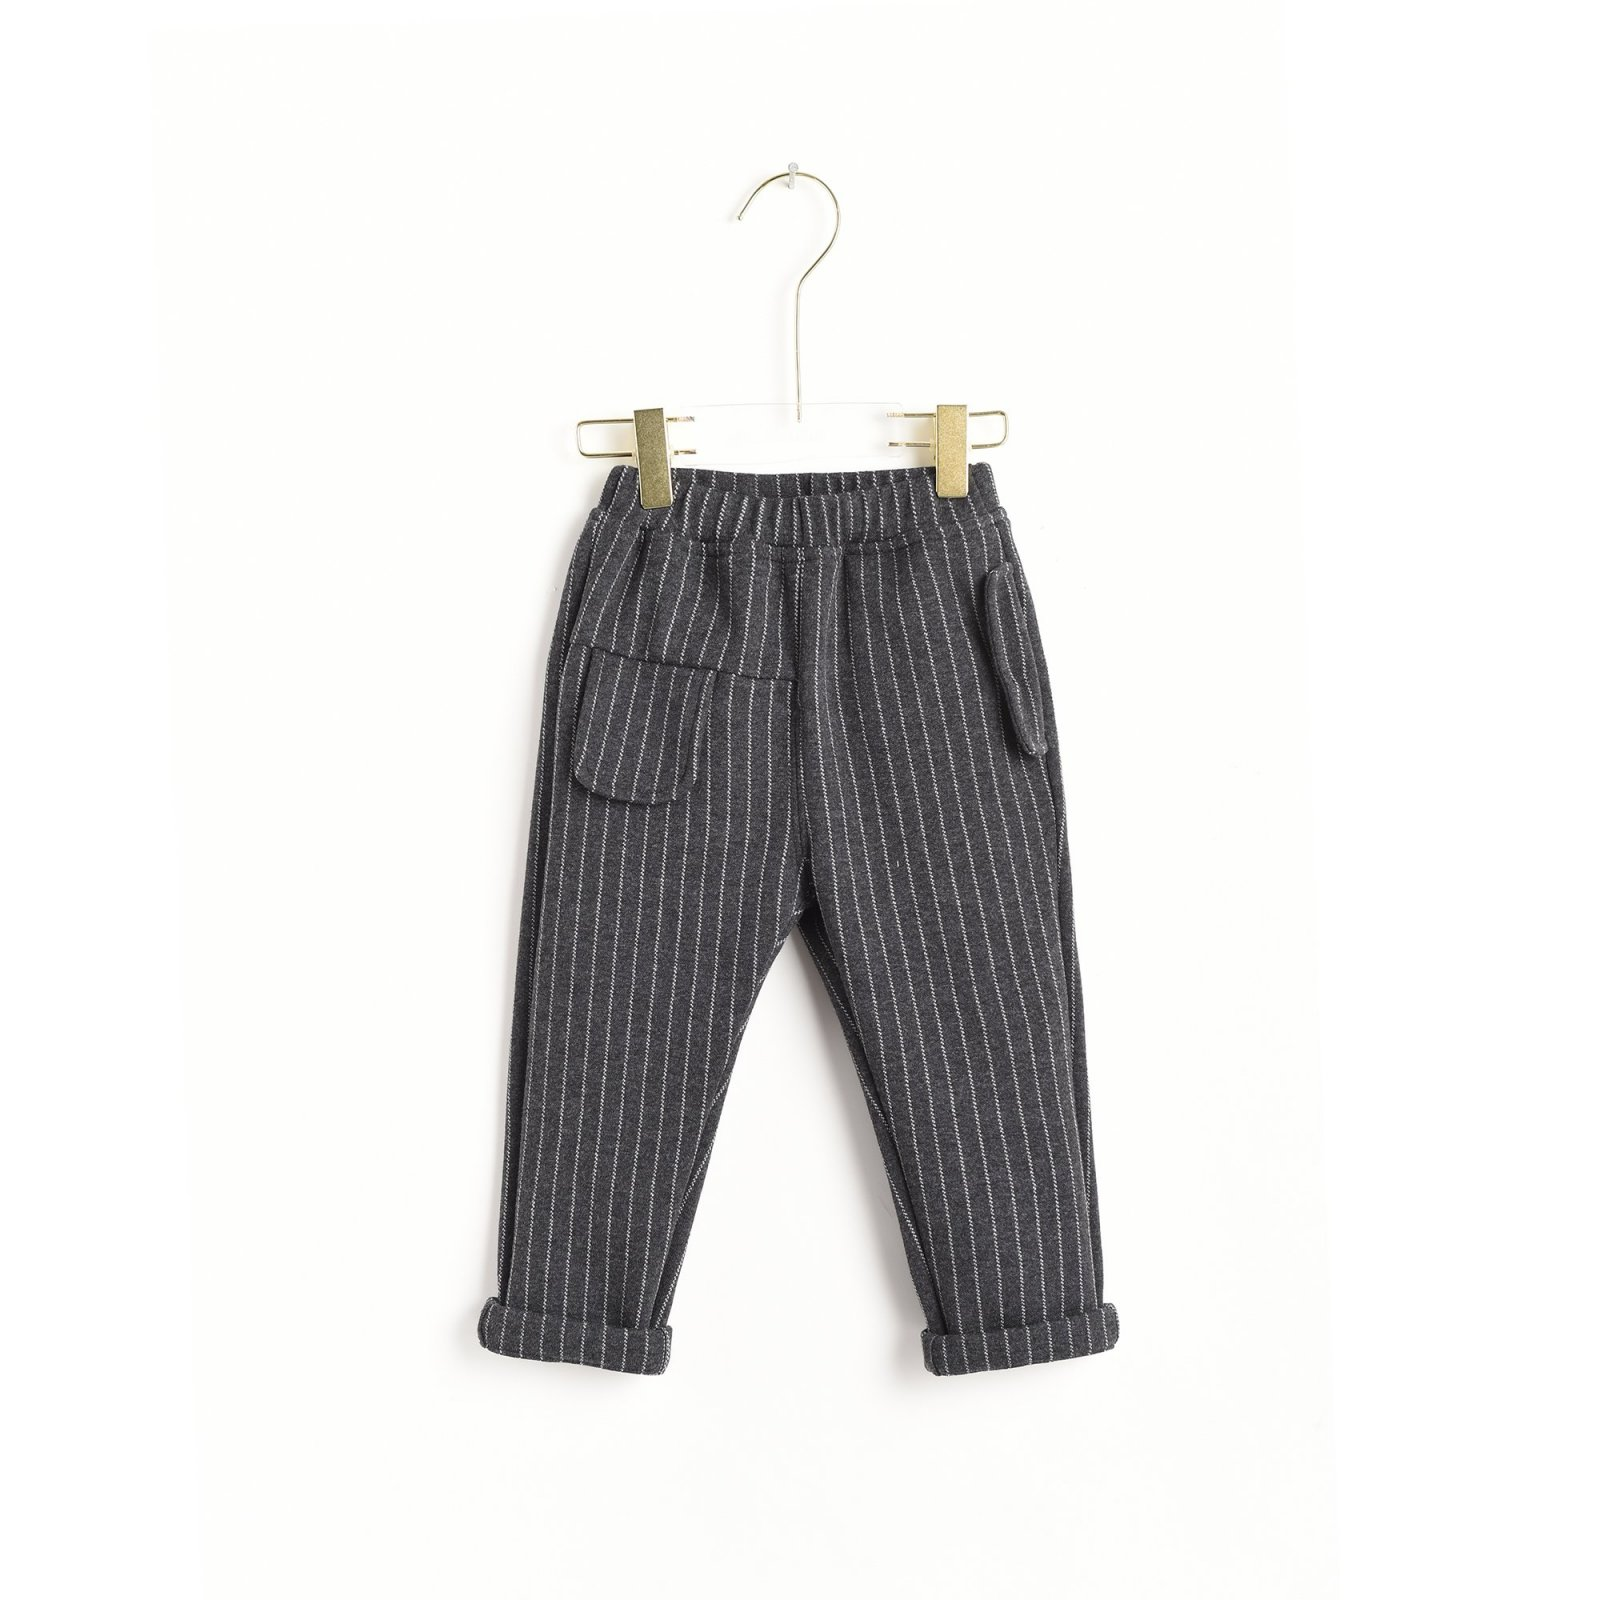 Charcoal Grey Striped Pants by Aimama